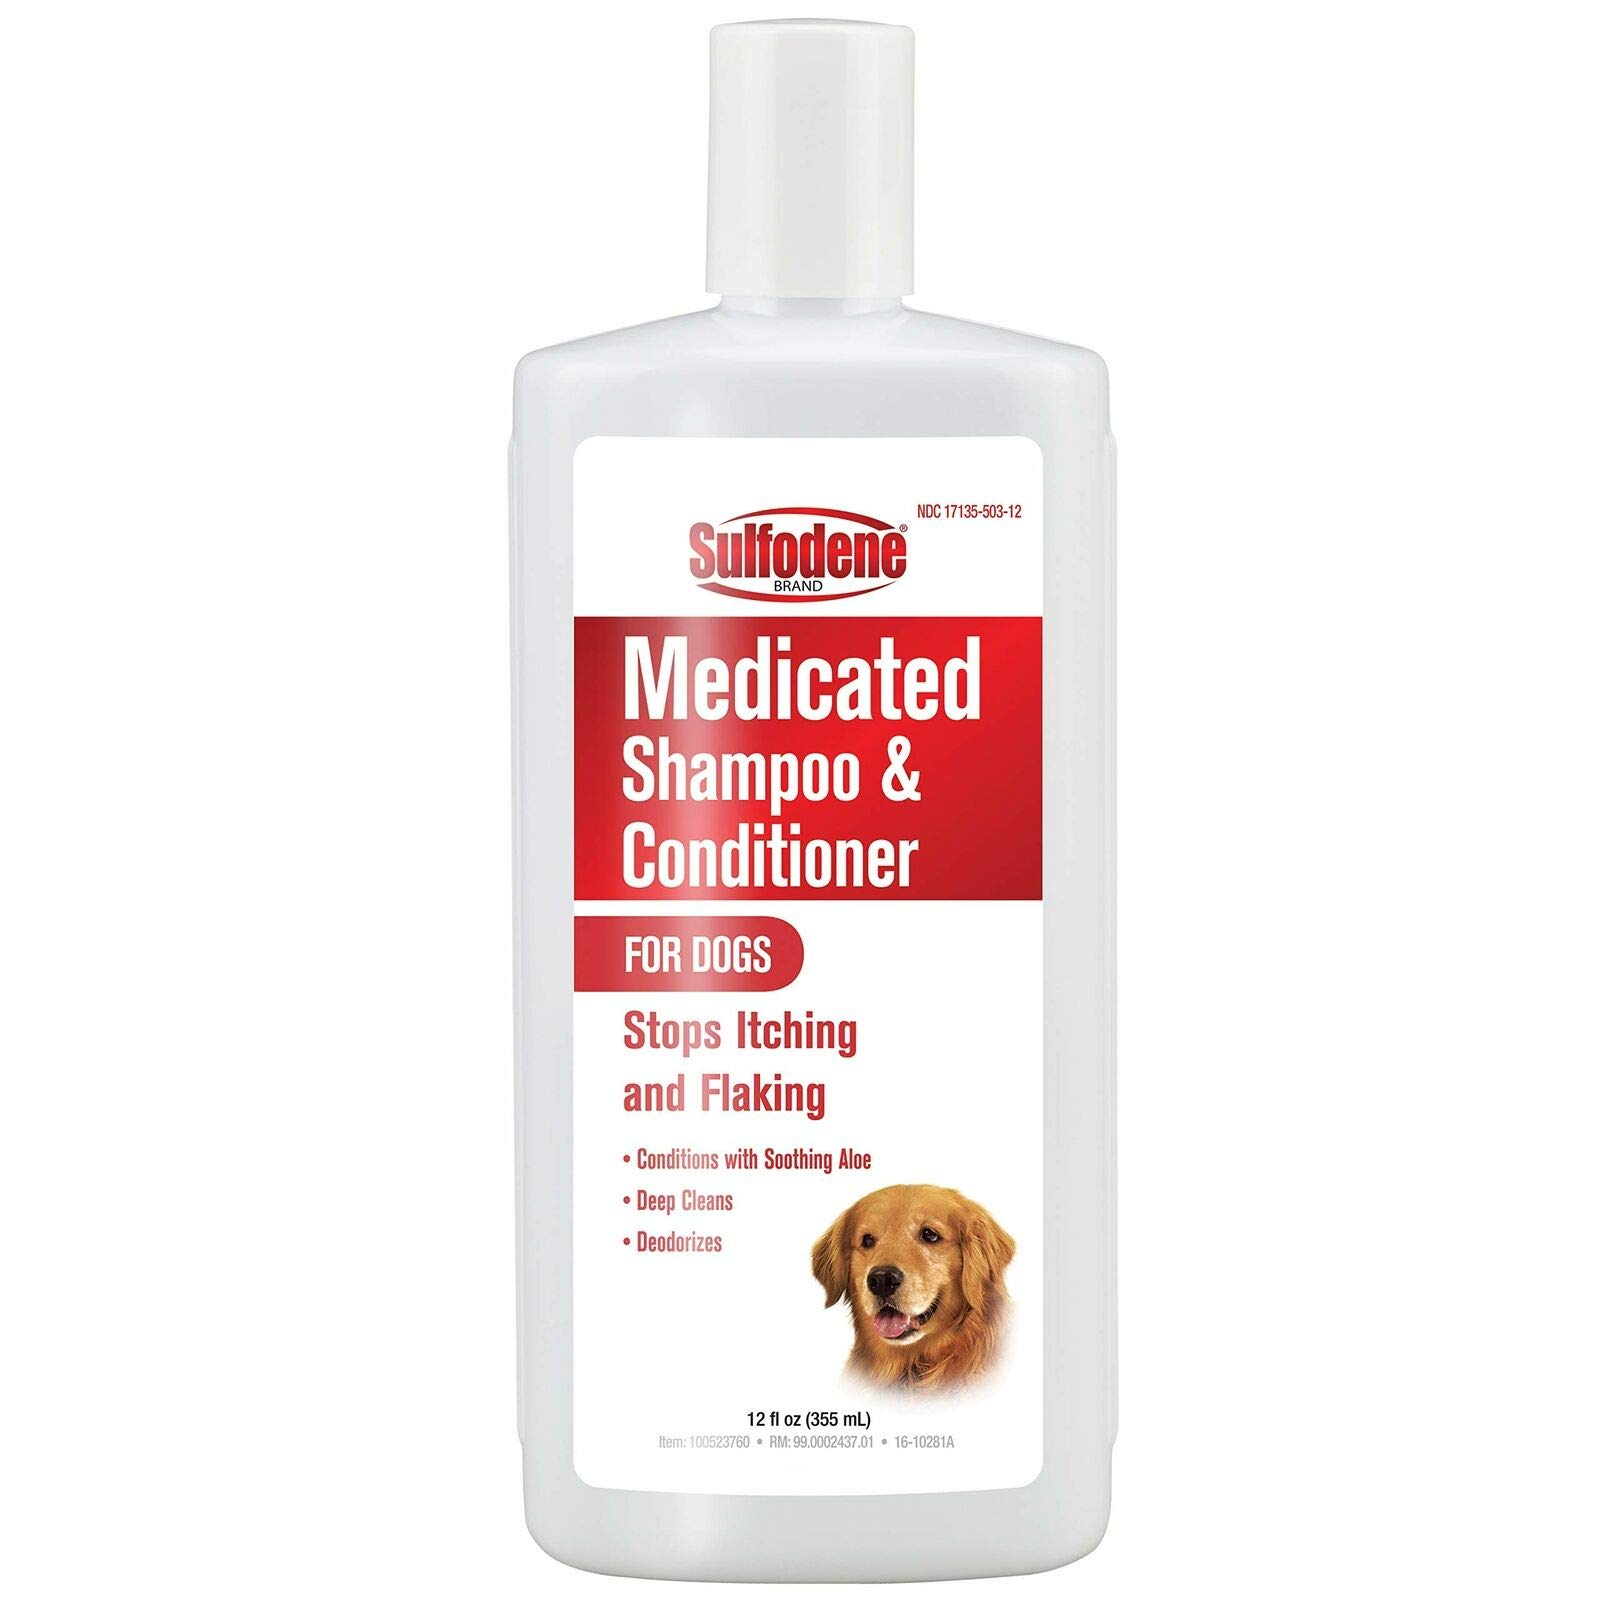 Sulfodene Medicated Shampoo & Conditioner for Dogs 12oz